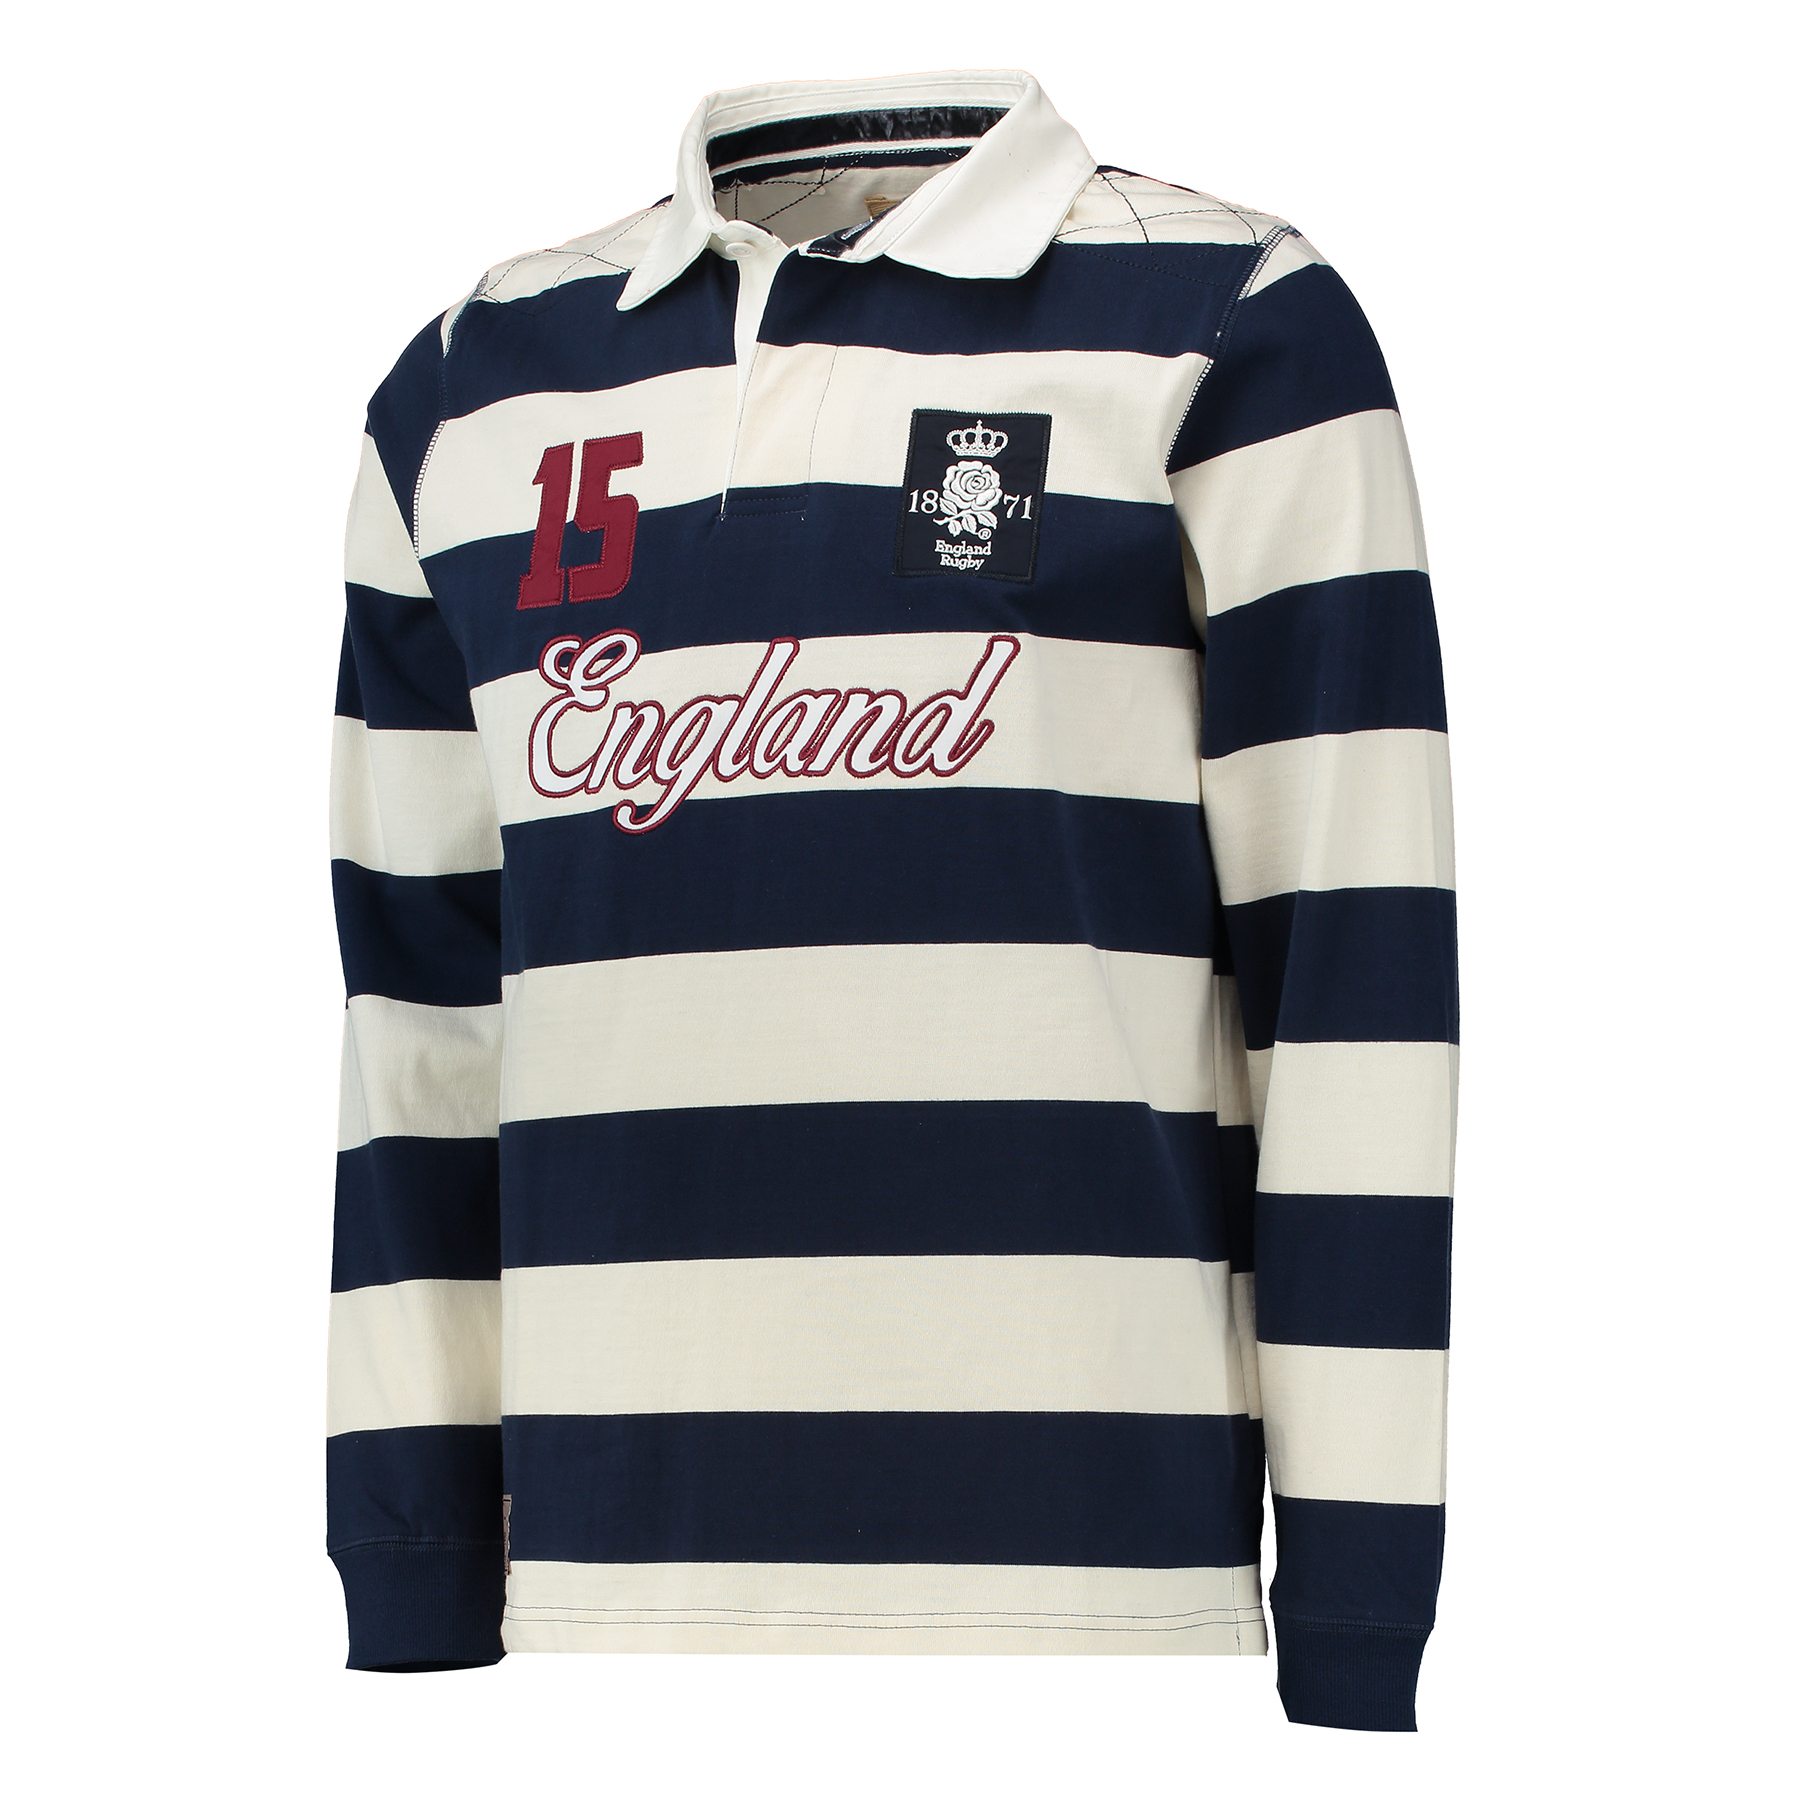 "Image of ""England Authentics 1871 Rugby Shirt - Navy/White"""